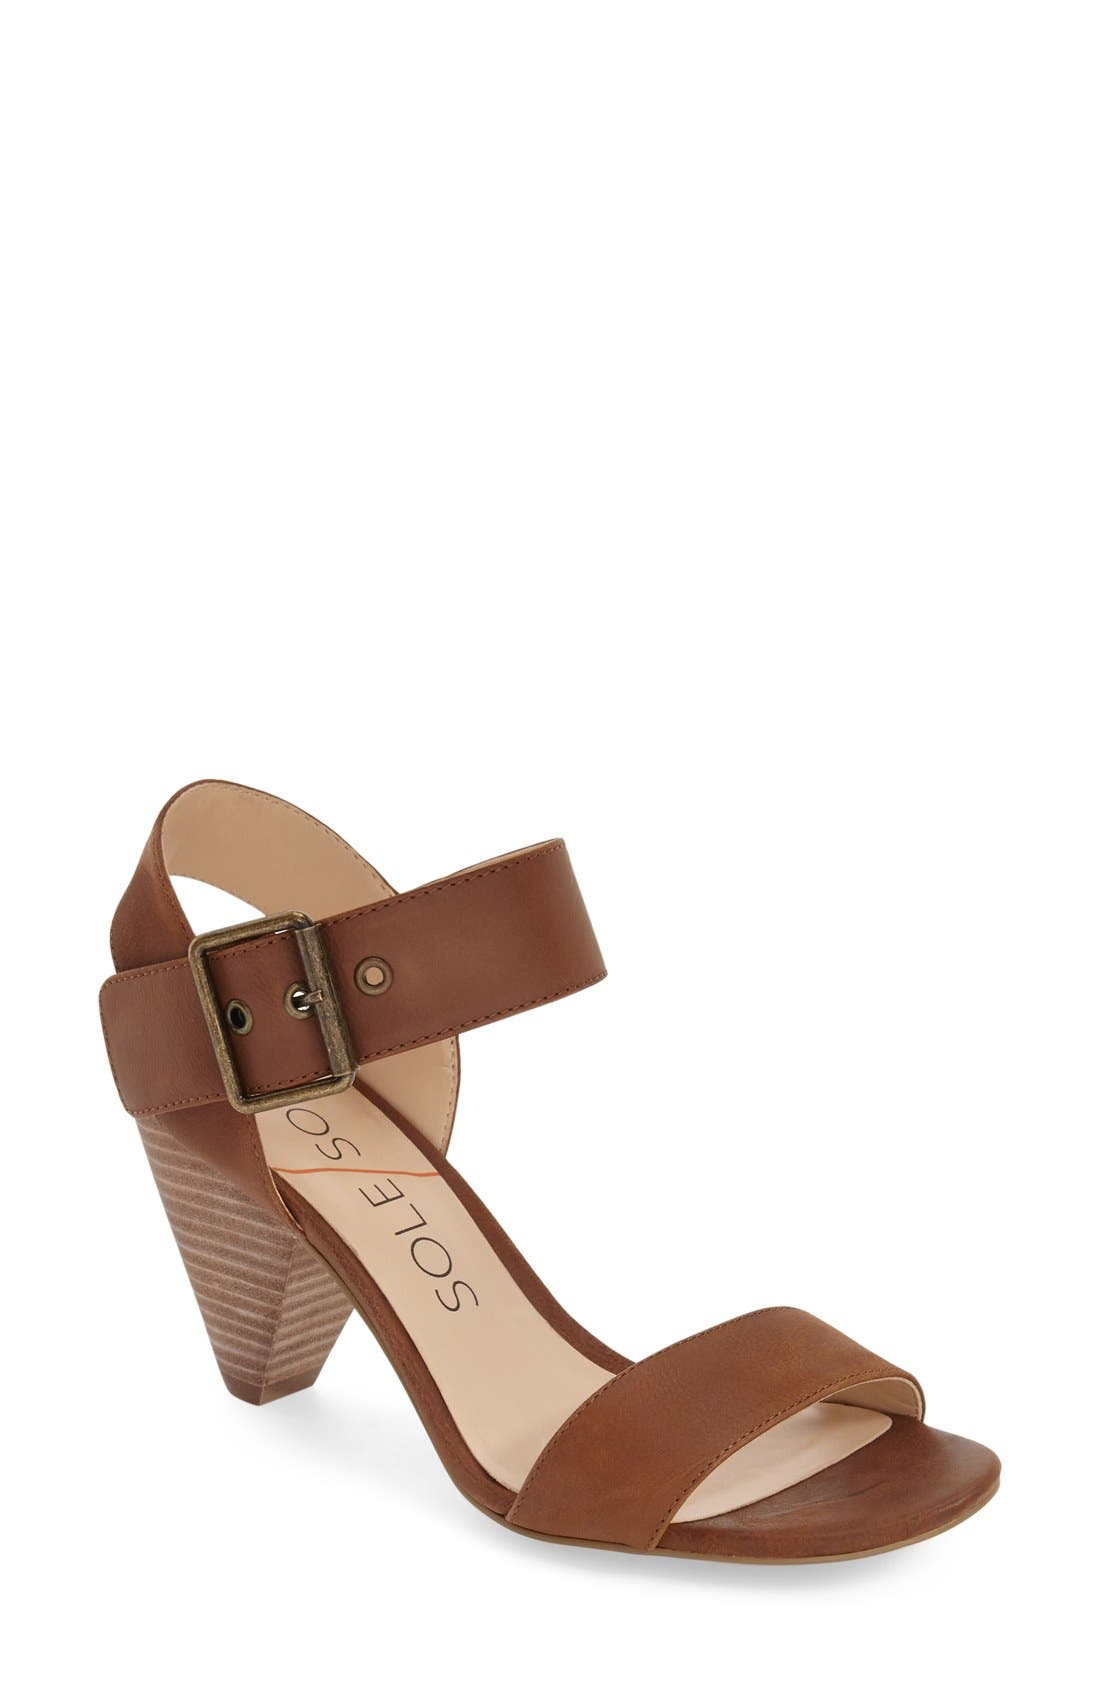 Main Image - Sole Society 'Missy' Sandal (Women)